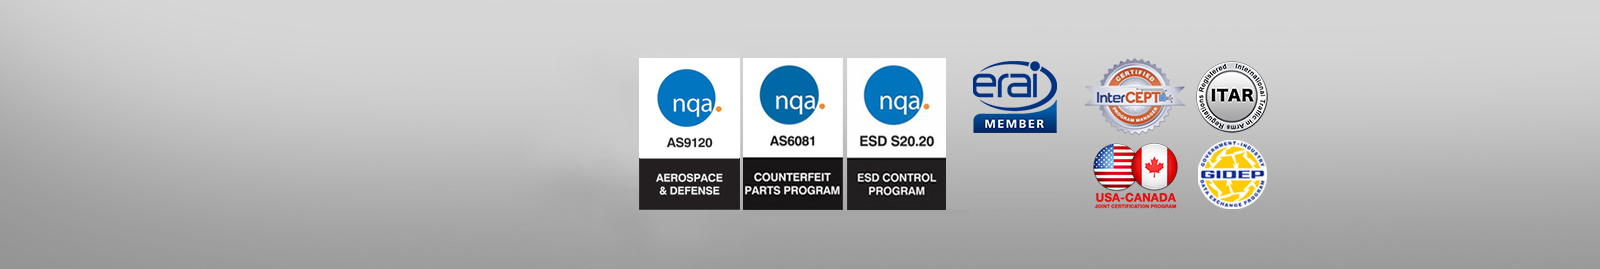 Certifications-banner